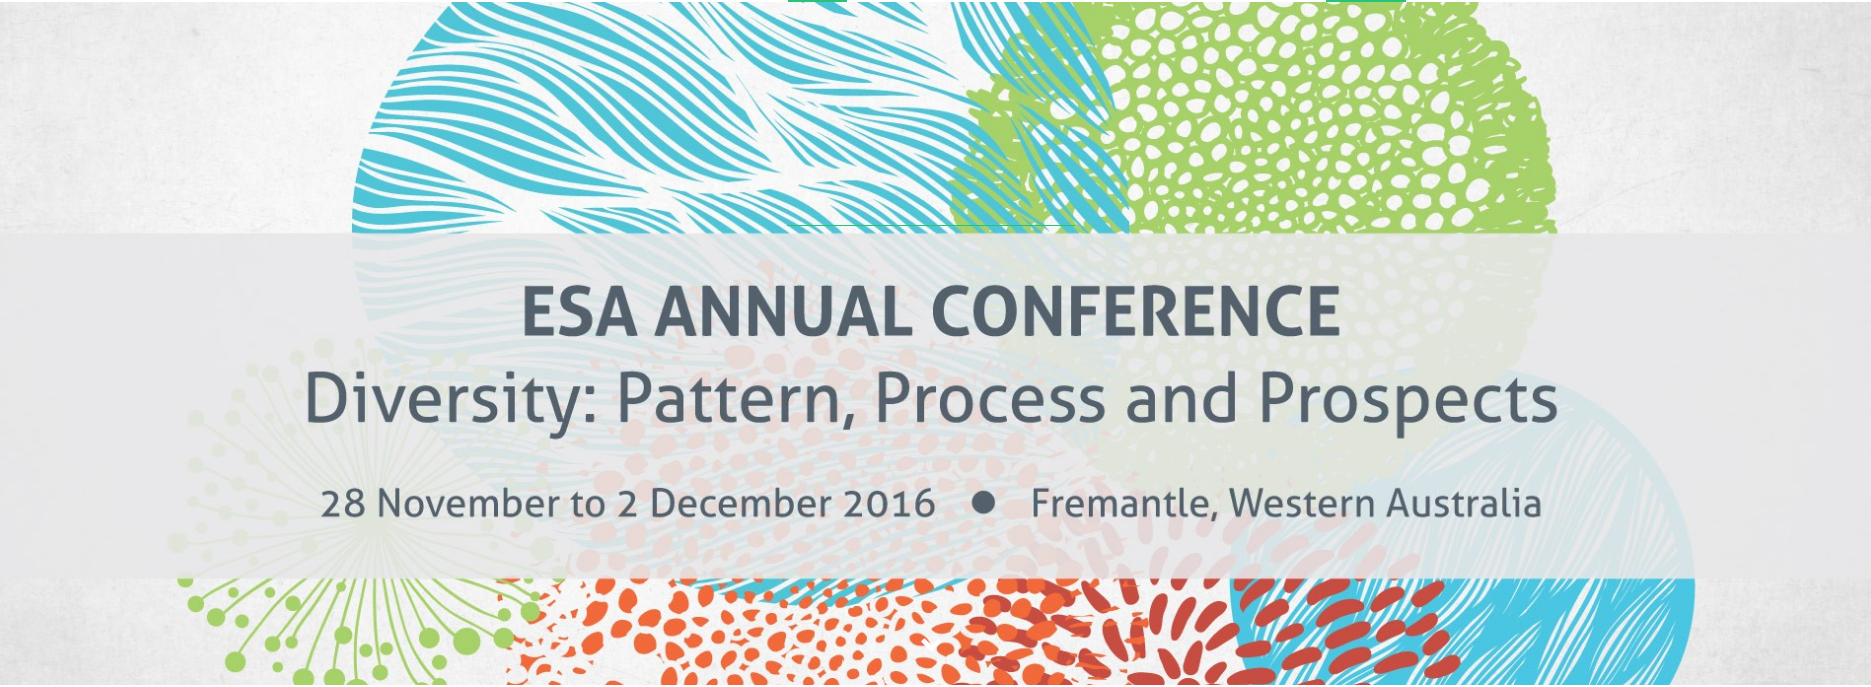 Ecological Society of Australia Annual Conference